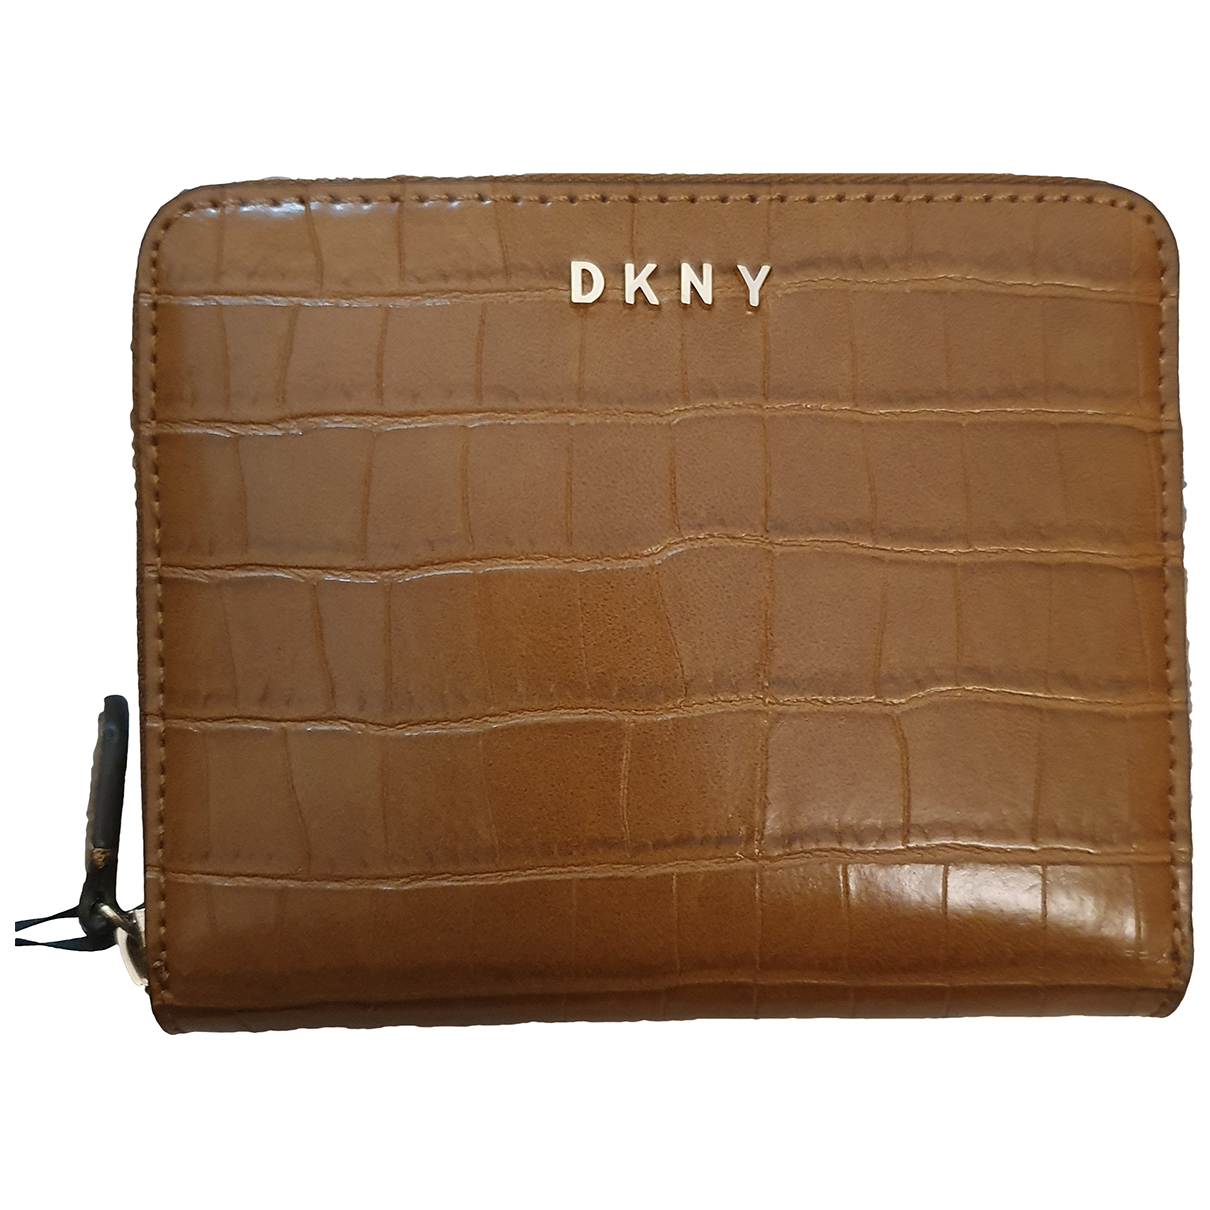 Dkny N Brown Leather Purses, wallet & cases for Women N